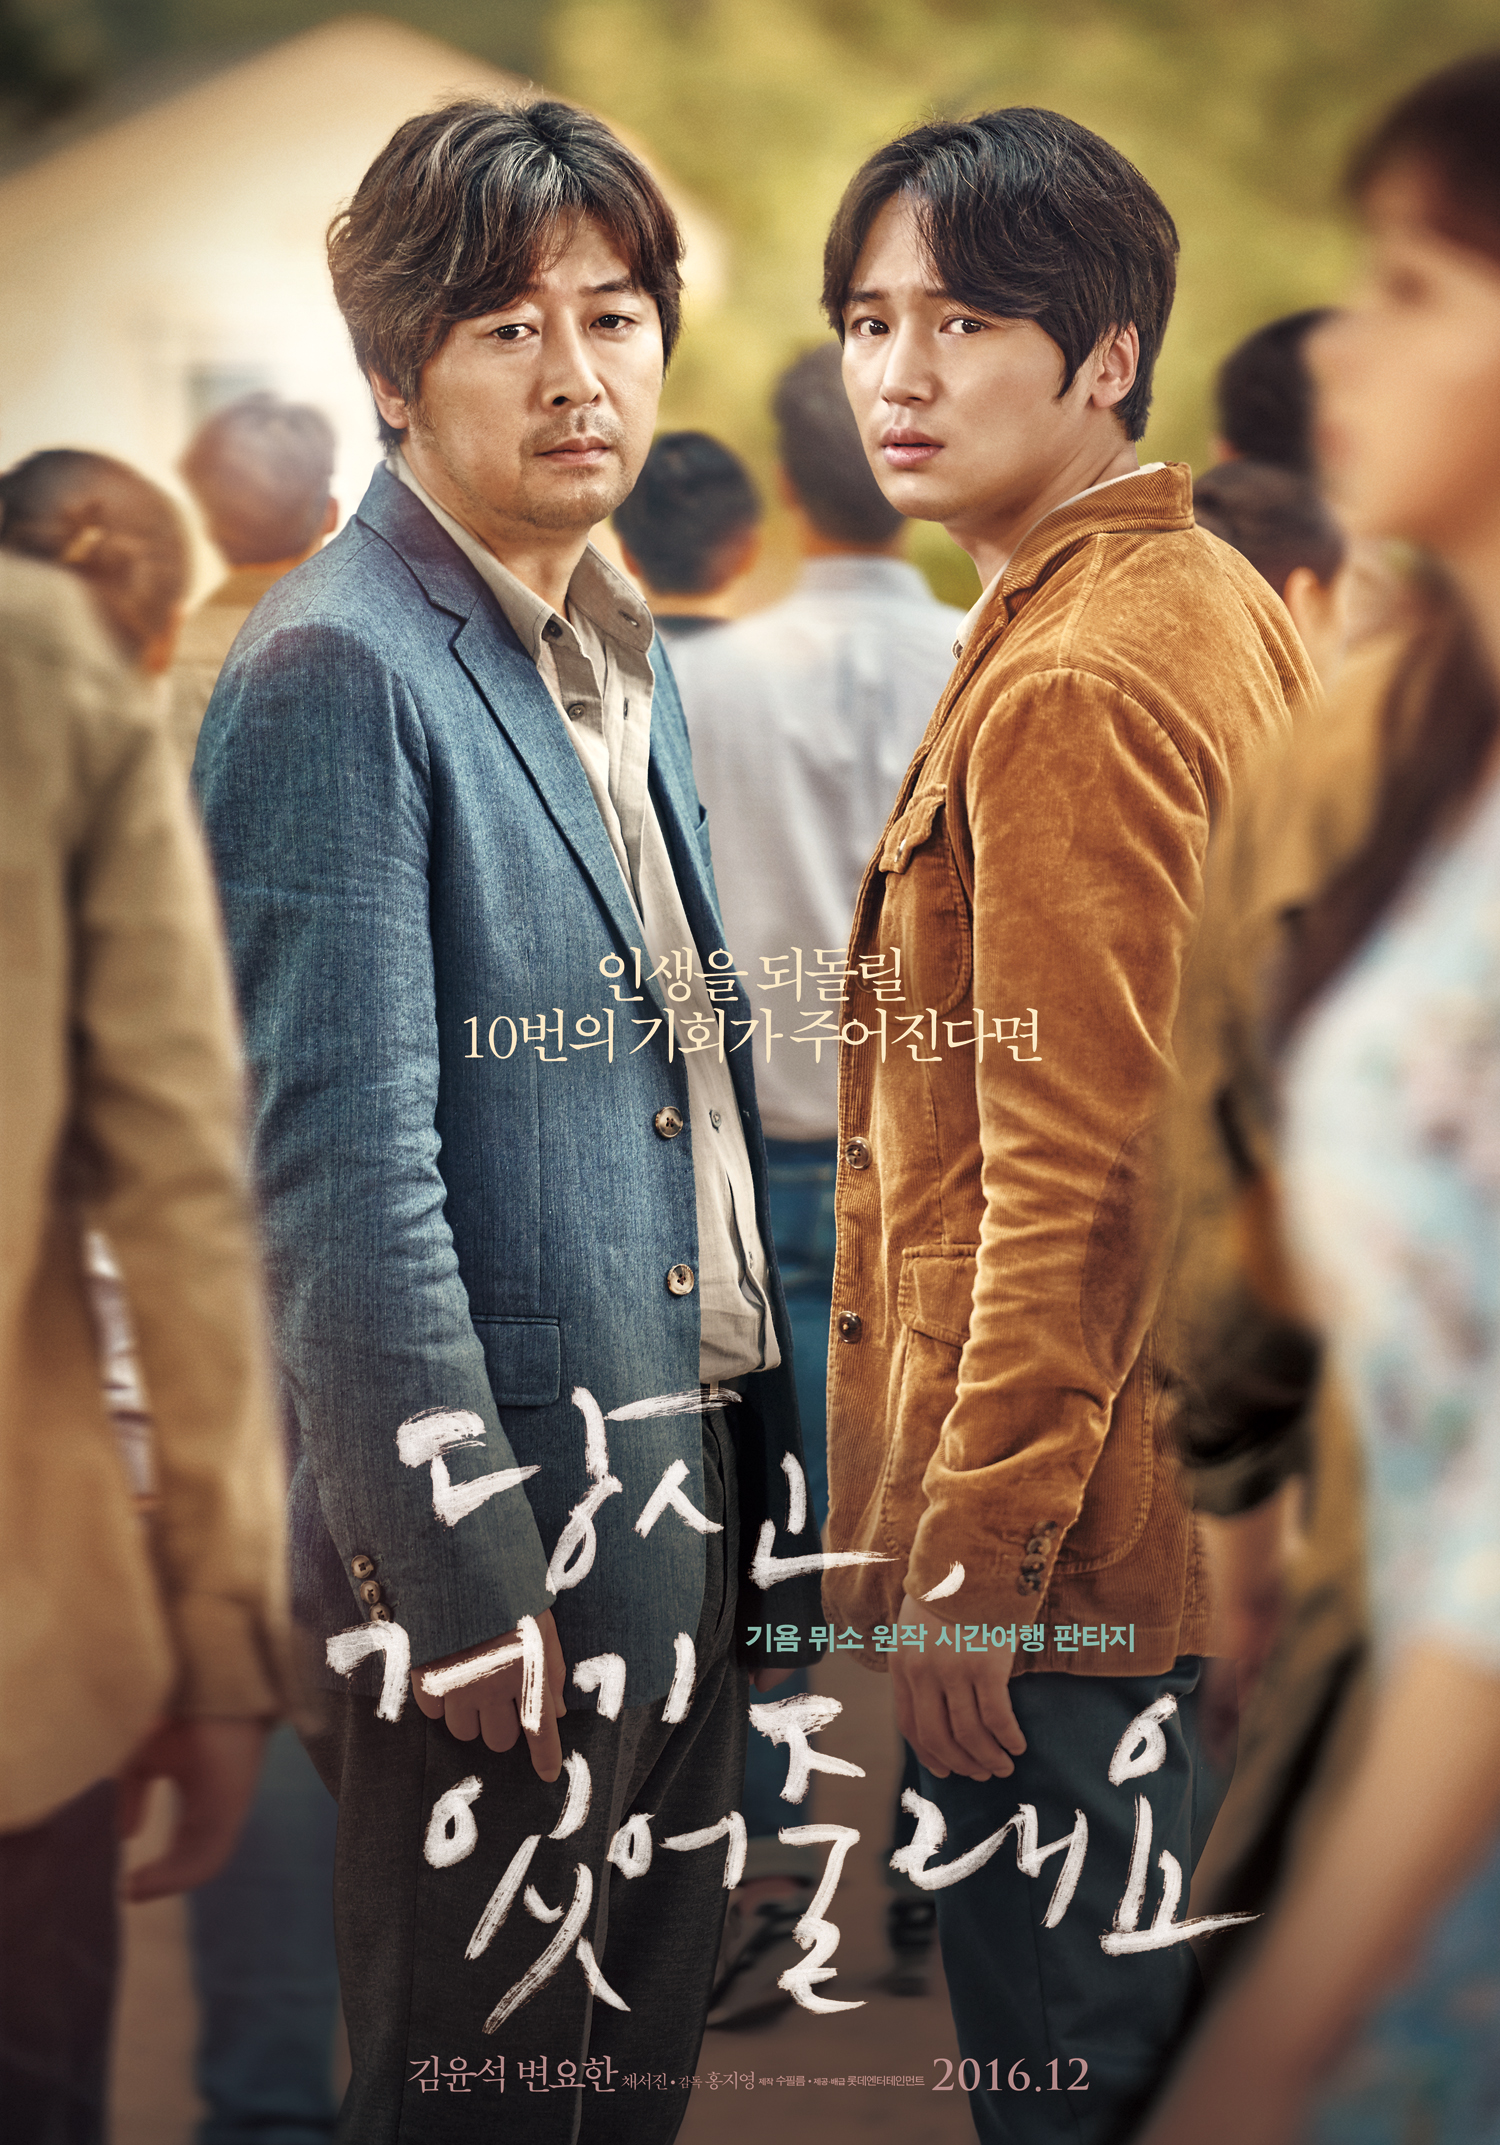 Will-You-Be-There-Korean-Movie-2016-Poster